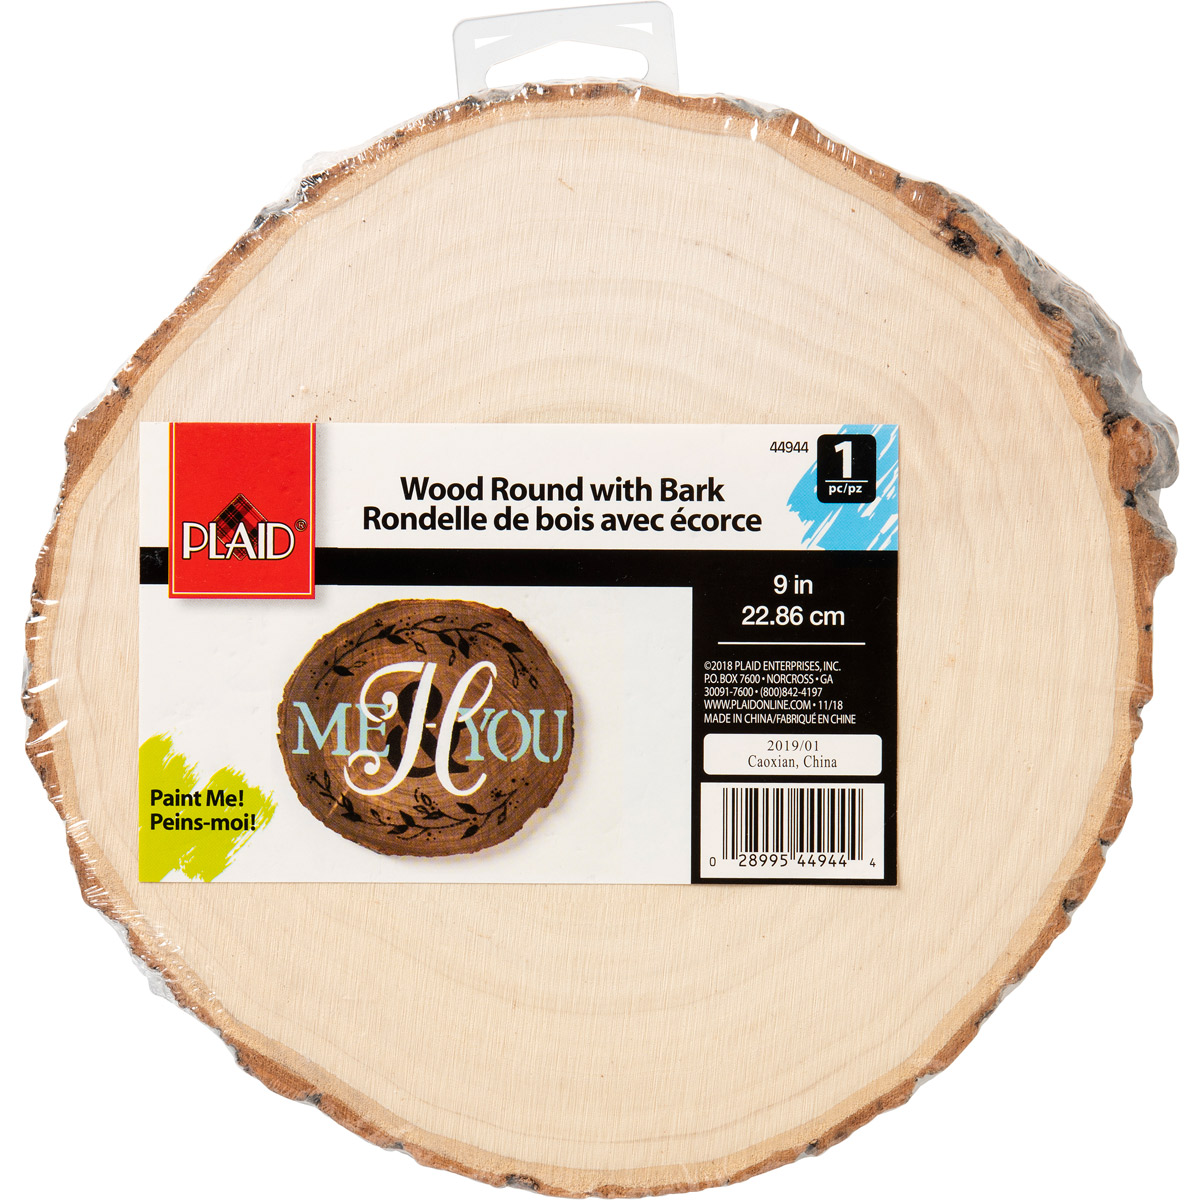 Plaid ® Wood Surfaces - Wood Round with Bark, 9